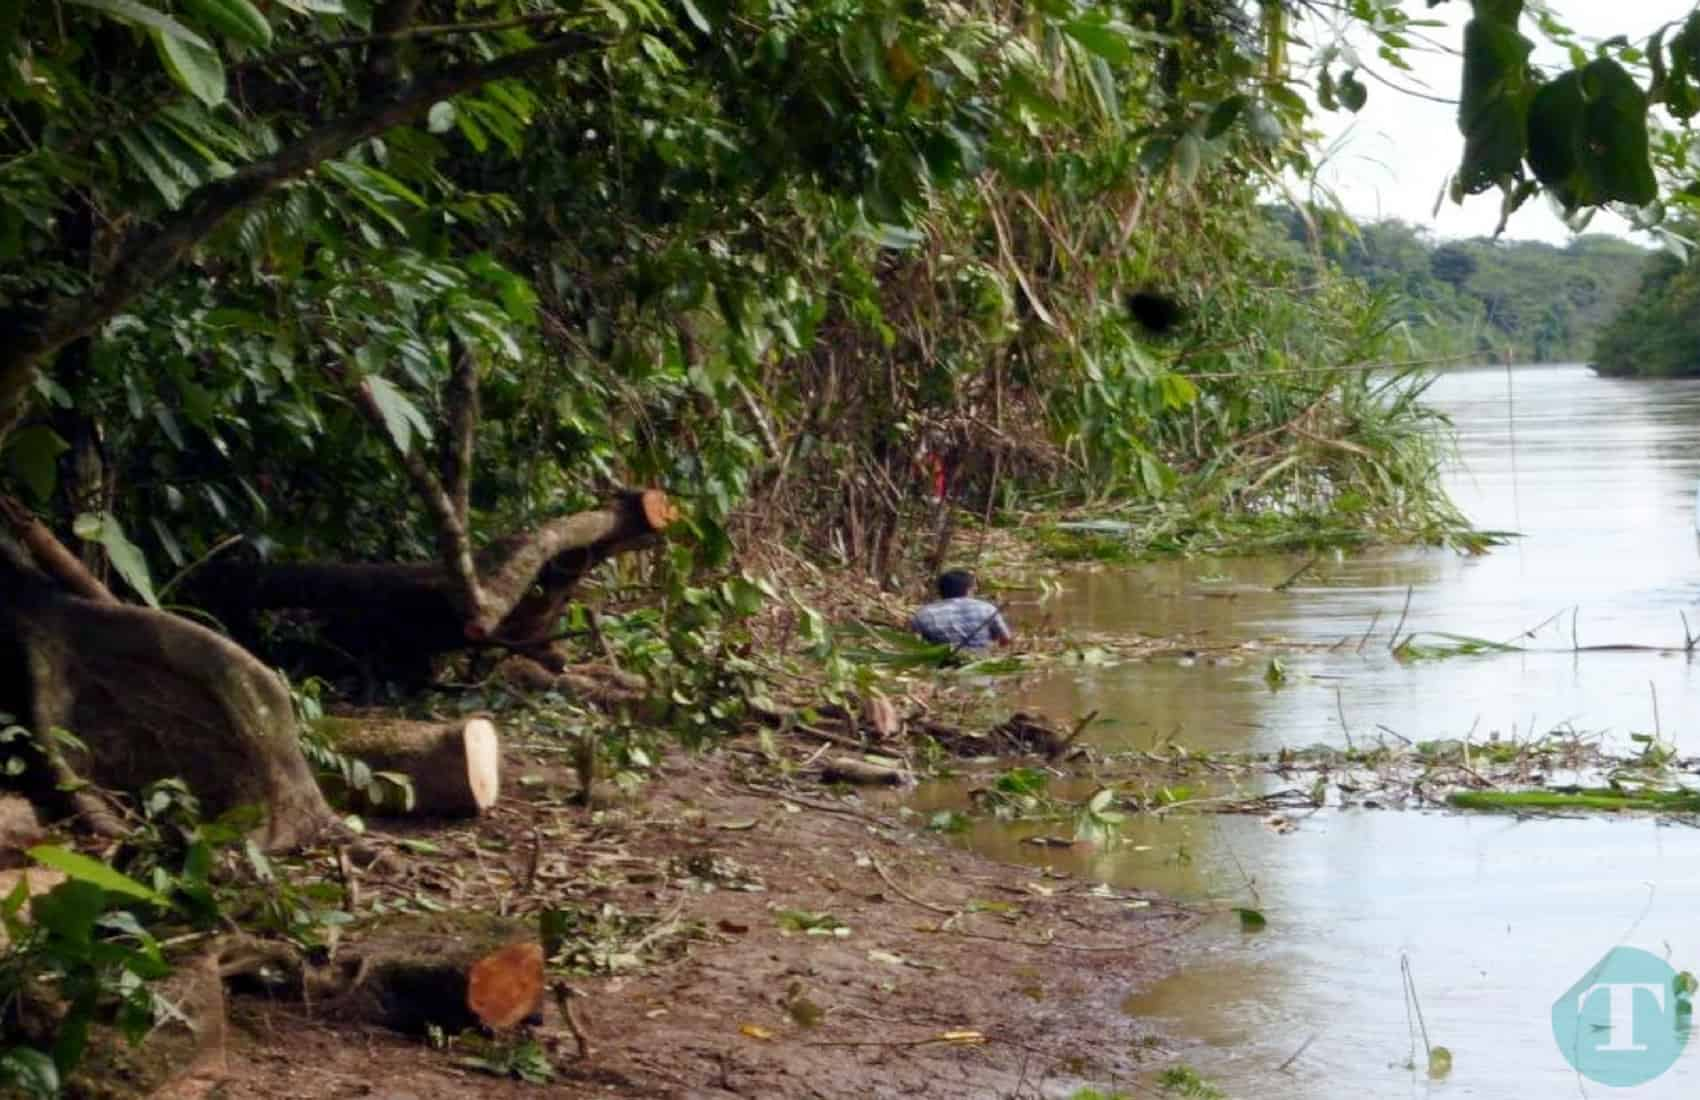 Logging and dredging at Río San Juan